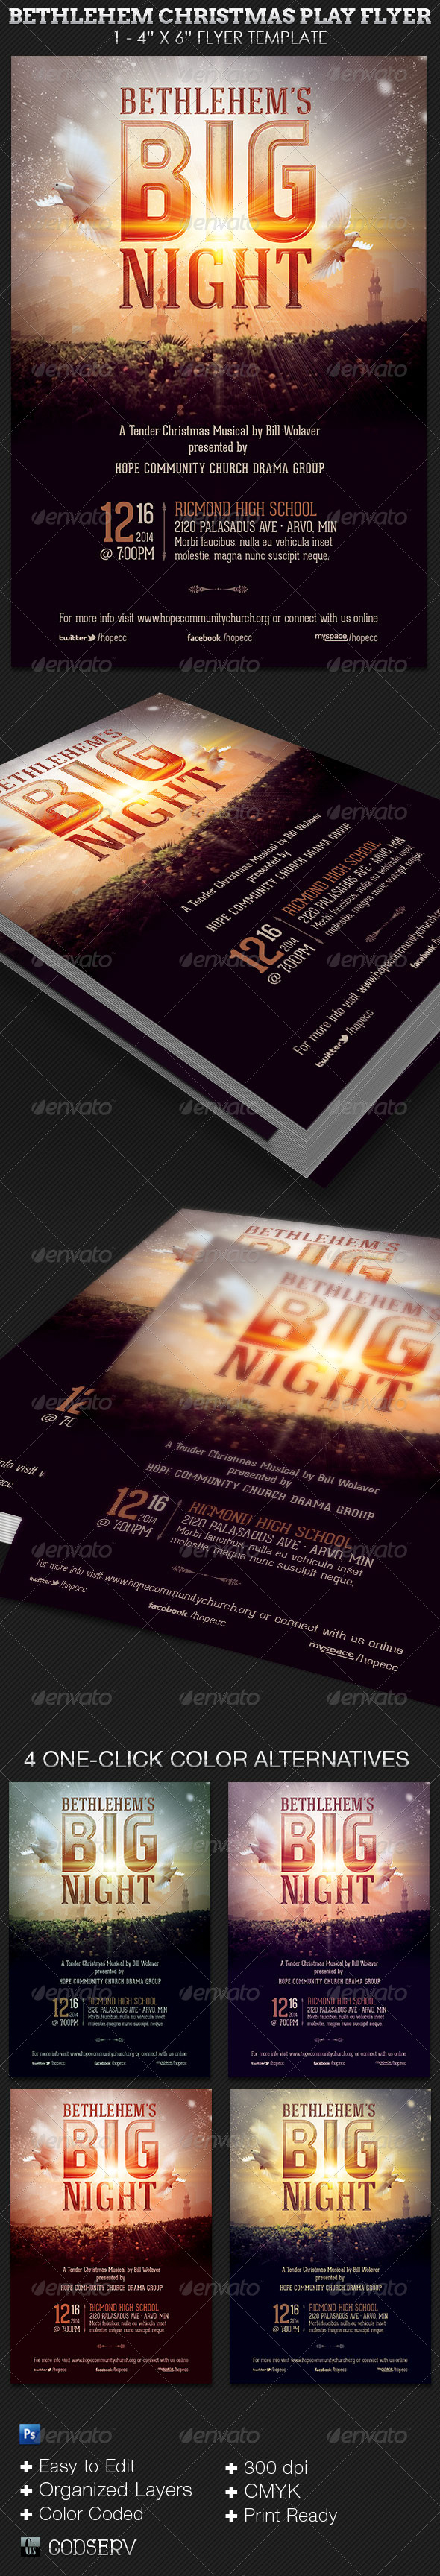 Bethlehem Christmas Play Church Flyer Template - Church Flyers